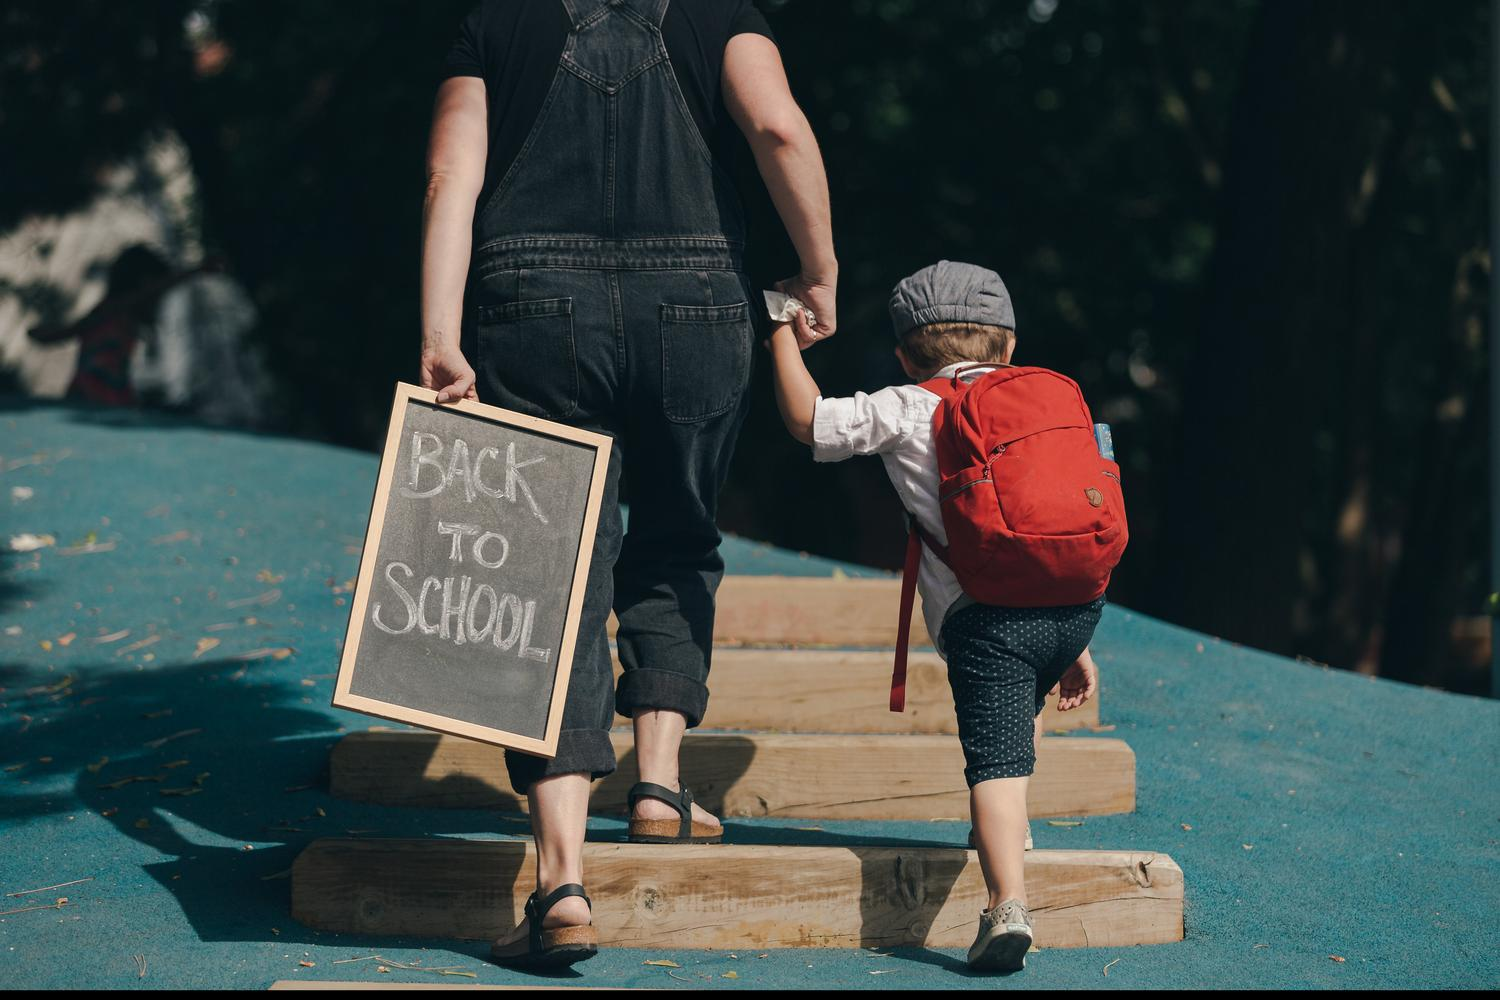 rear view of adult holding a Back To School chalkboard and the hand of a child wearing red backpack.